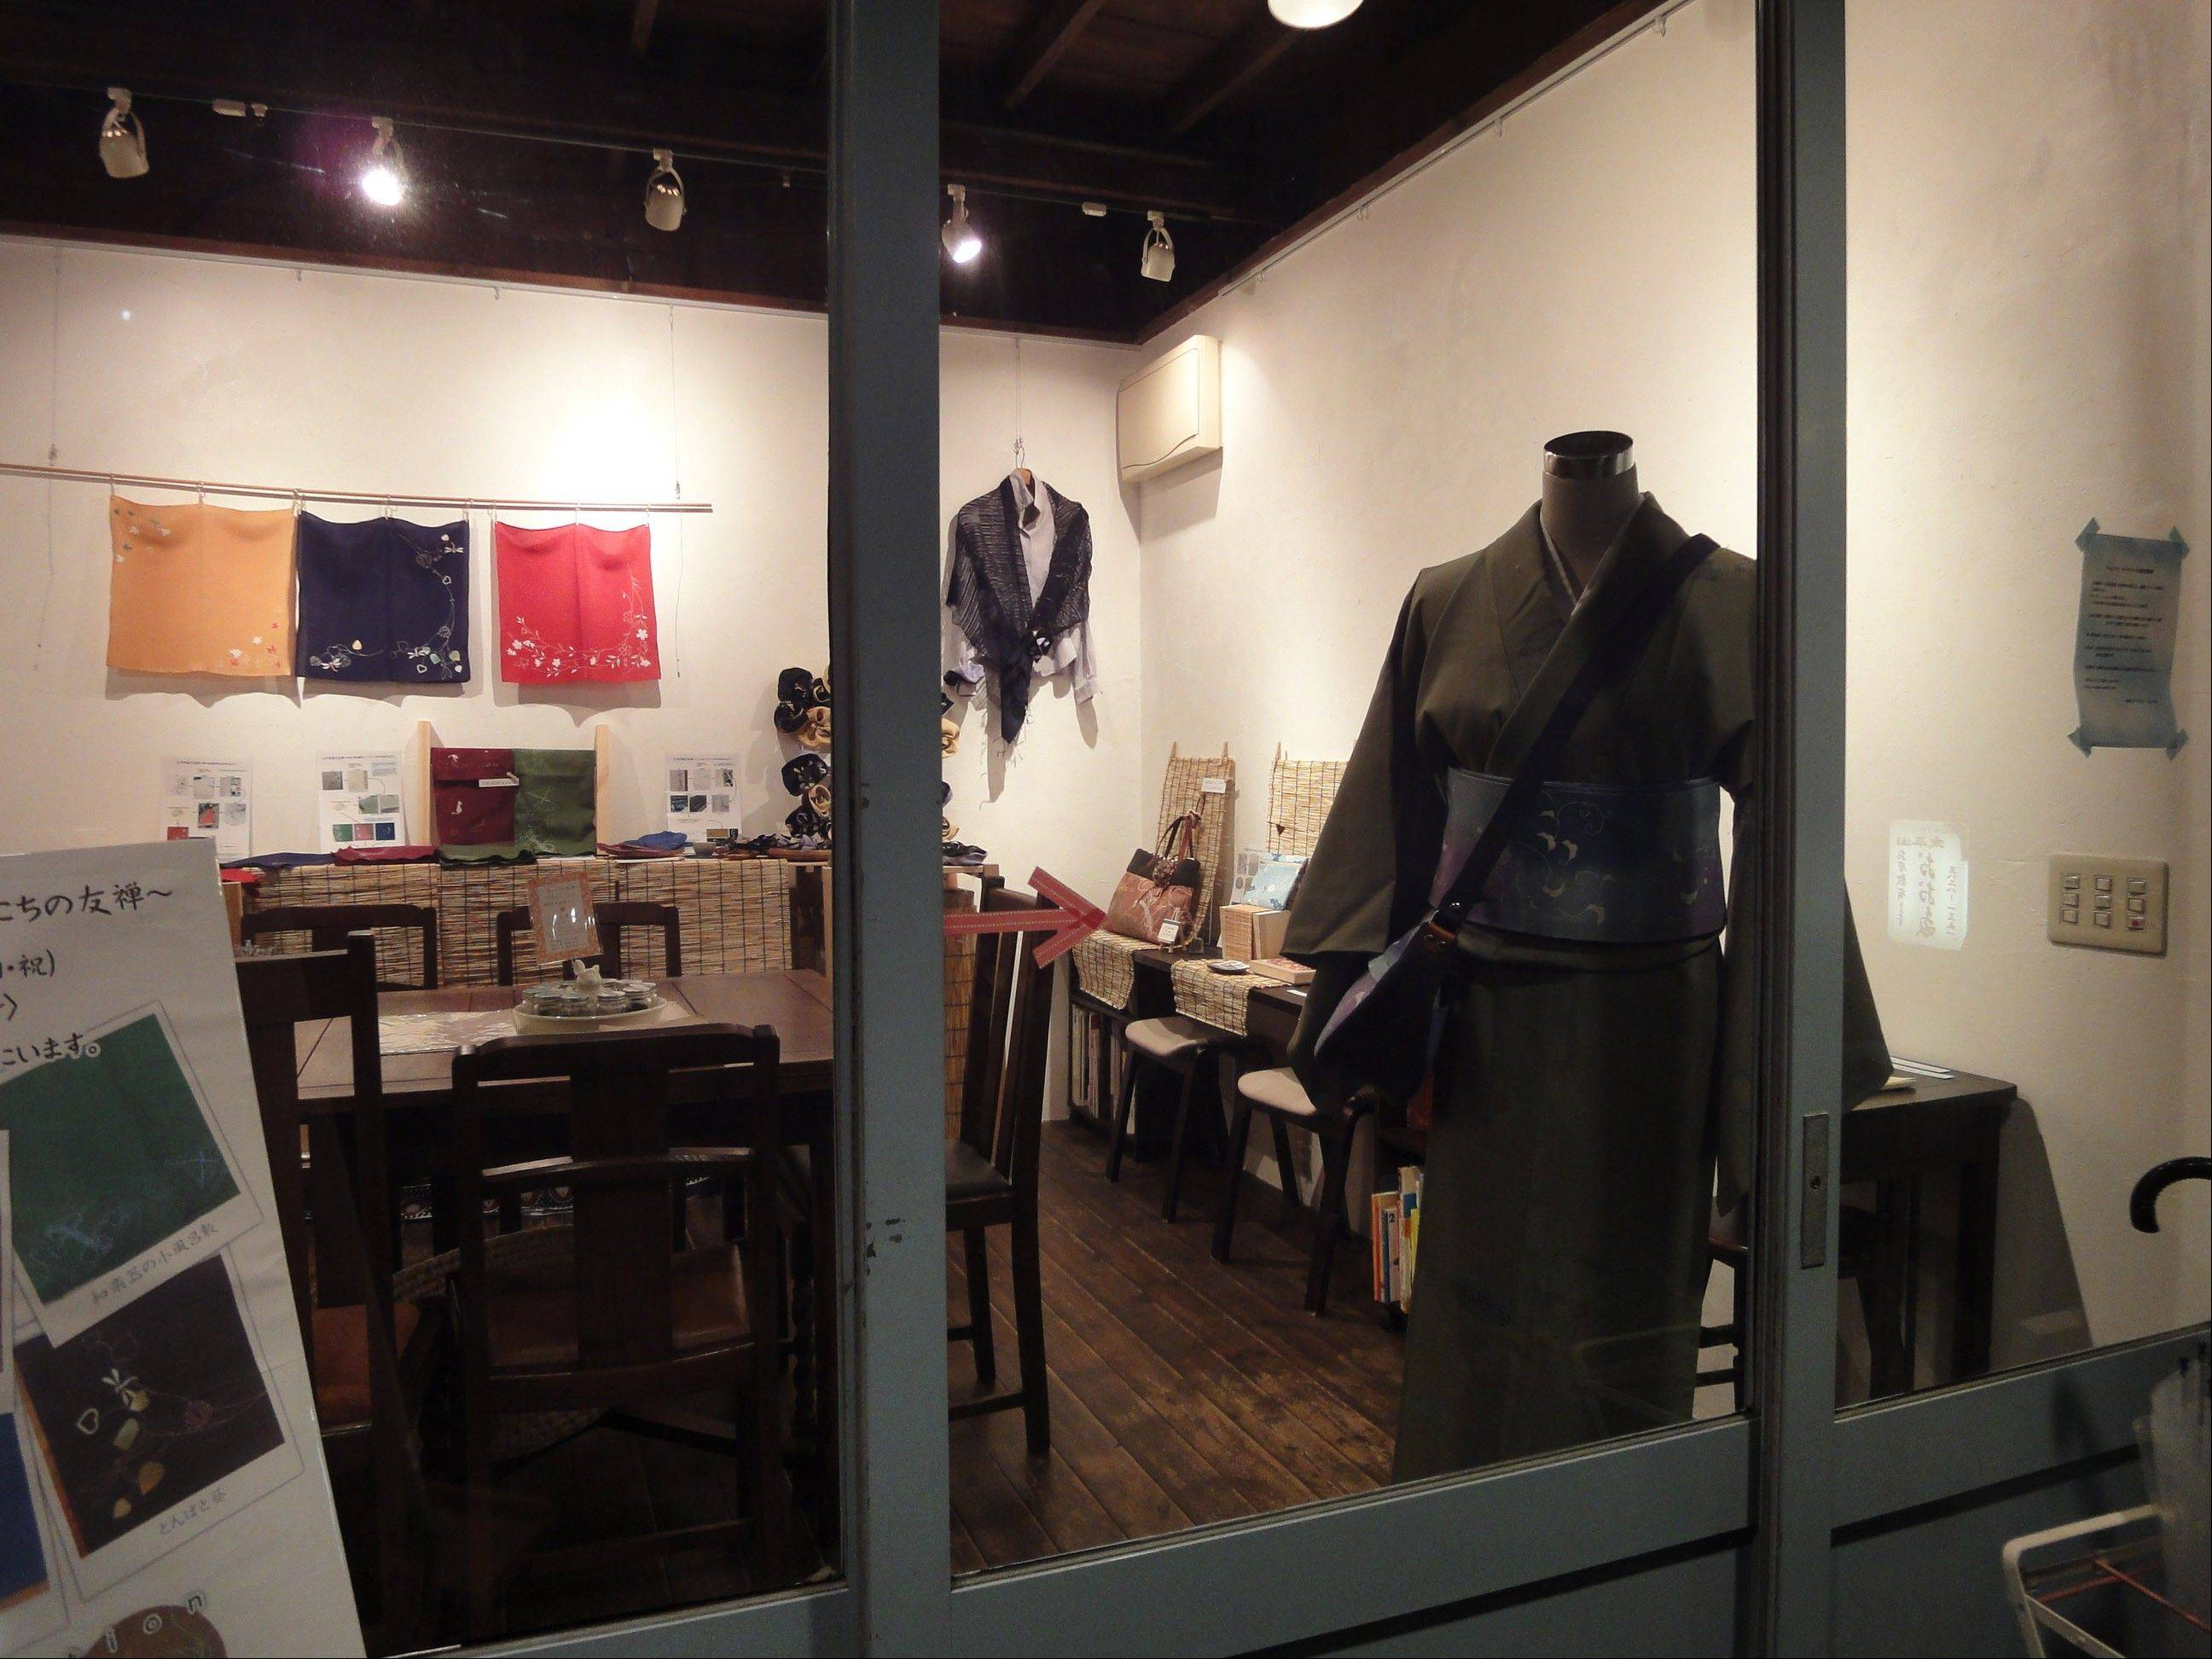 A handicrafts shop in Yanaka offers modern accessories like handbags made with traditional Japanese fabrics.